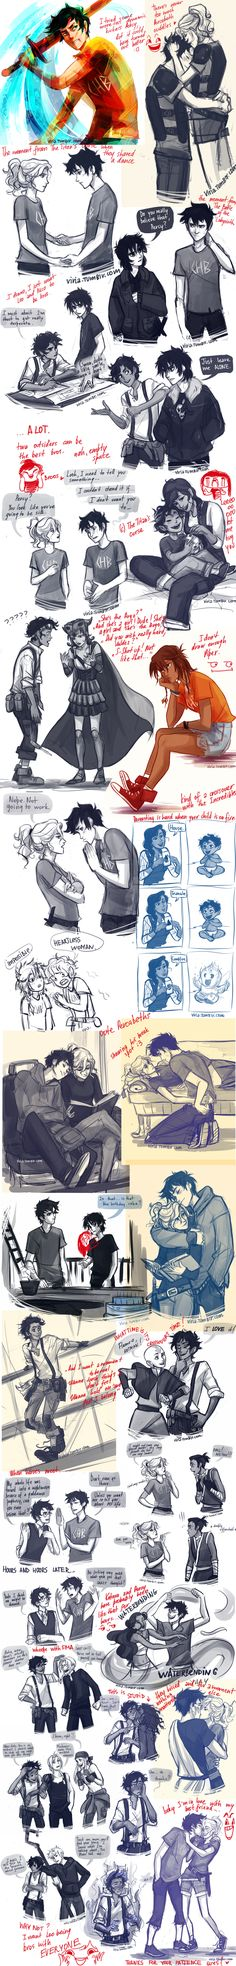 Percy Jackson-amazing drawings done by Viria